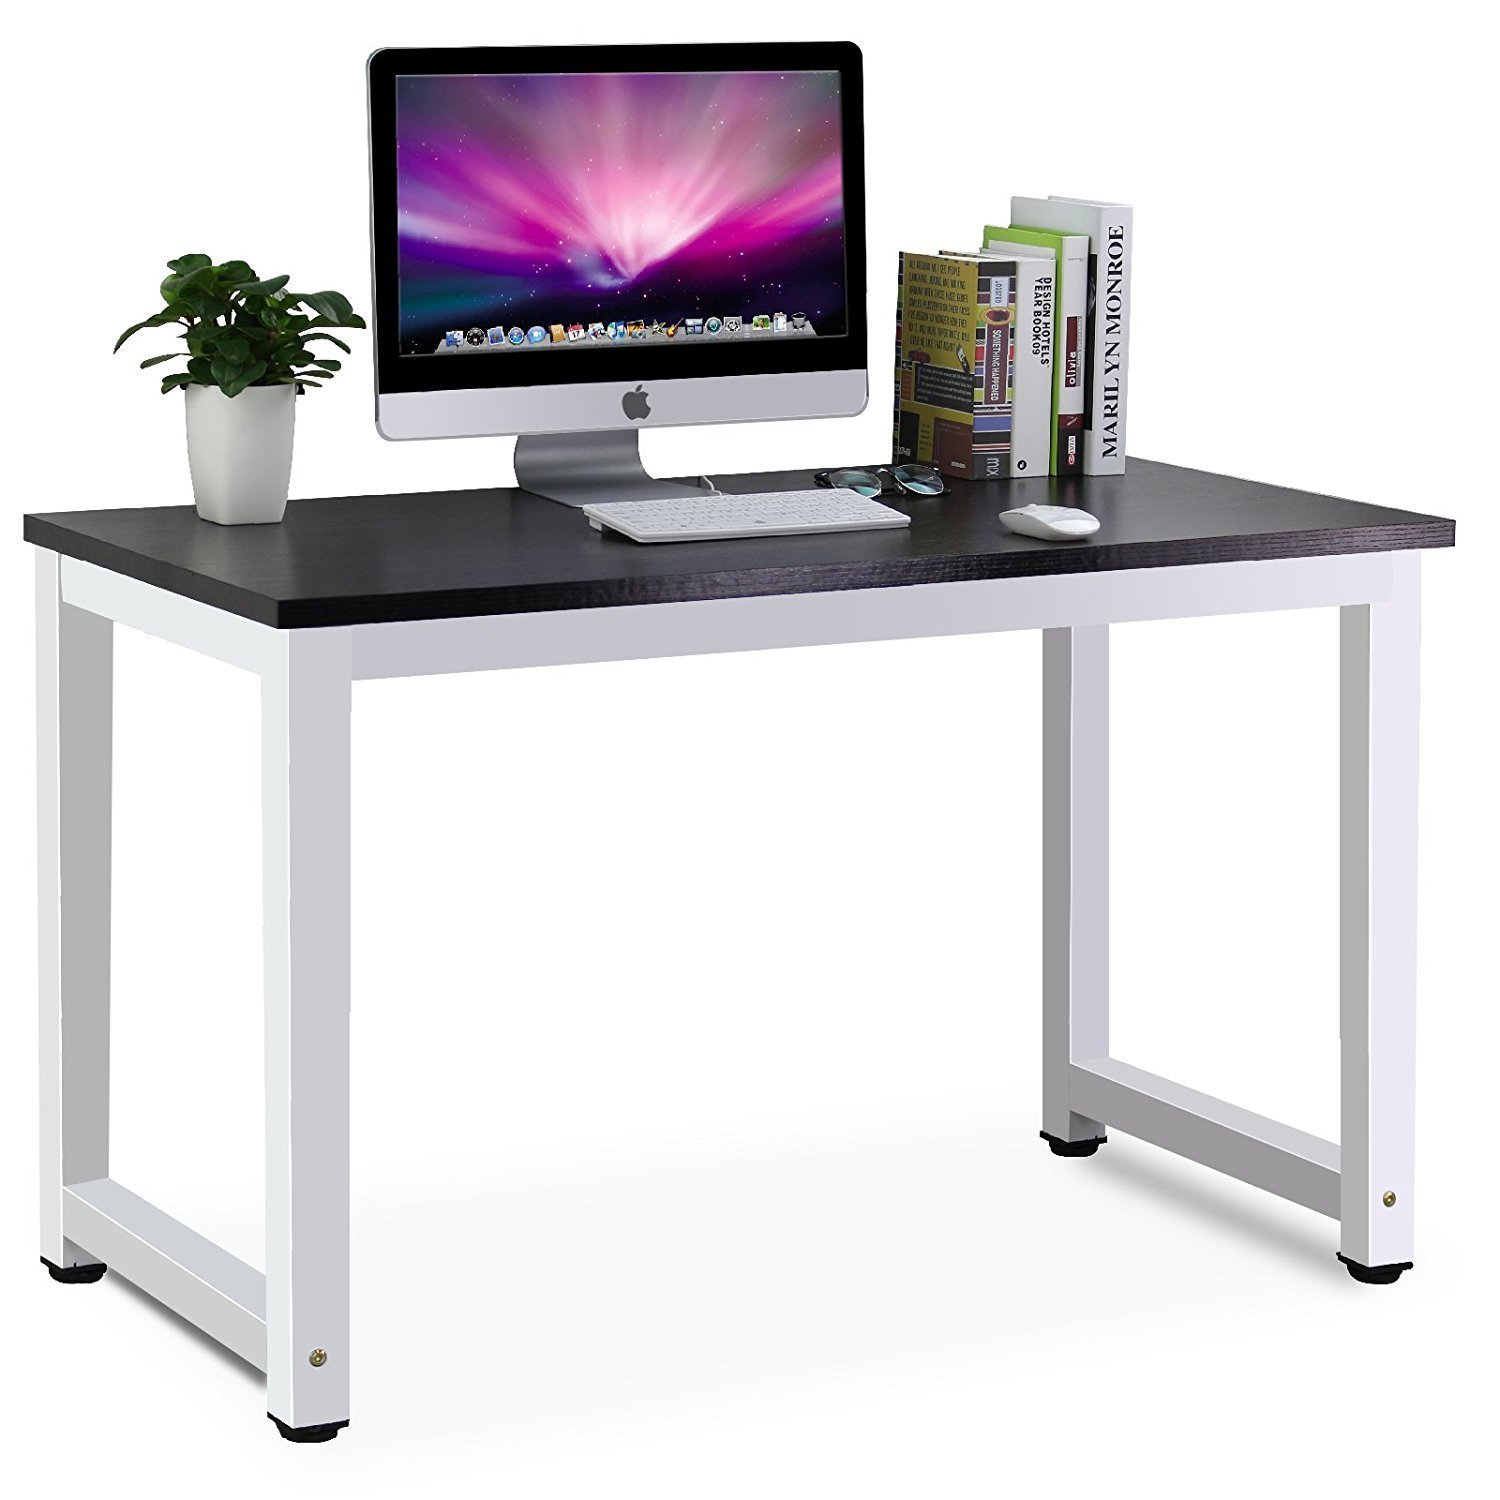 Amazon.com : Tribesigns Modern Simple Style Computer Desk PC Laptop Study  Table Workstation For Home Office, Black : Office Products